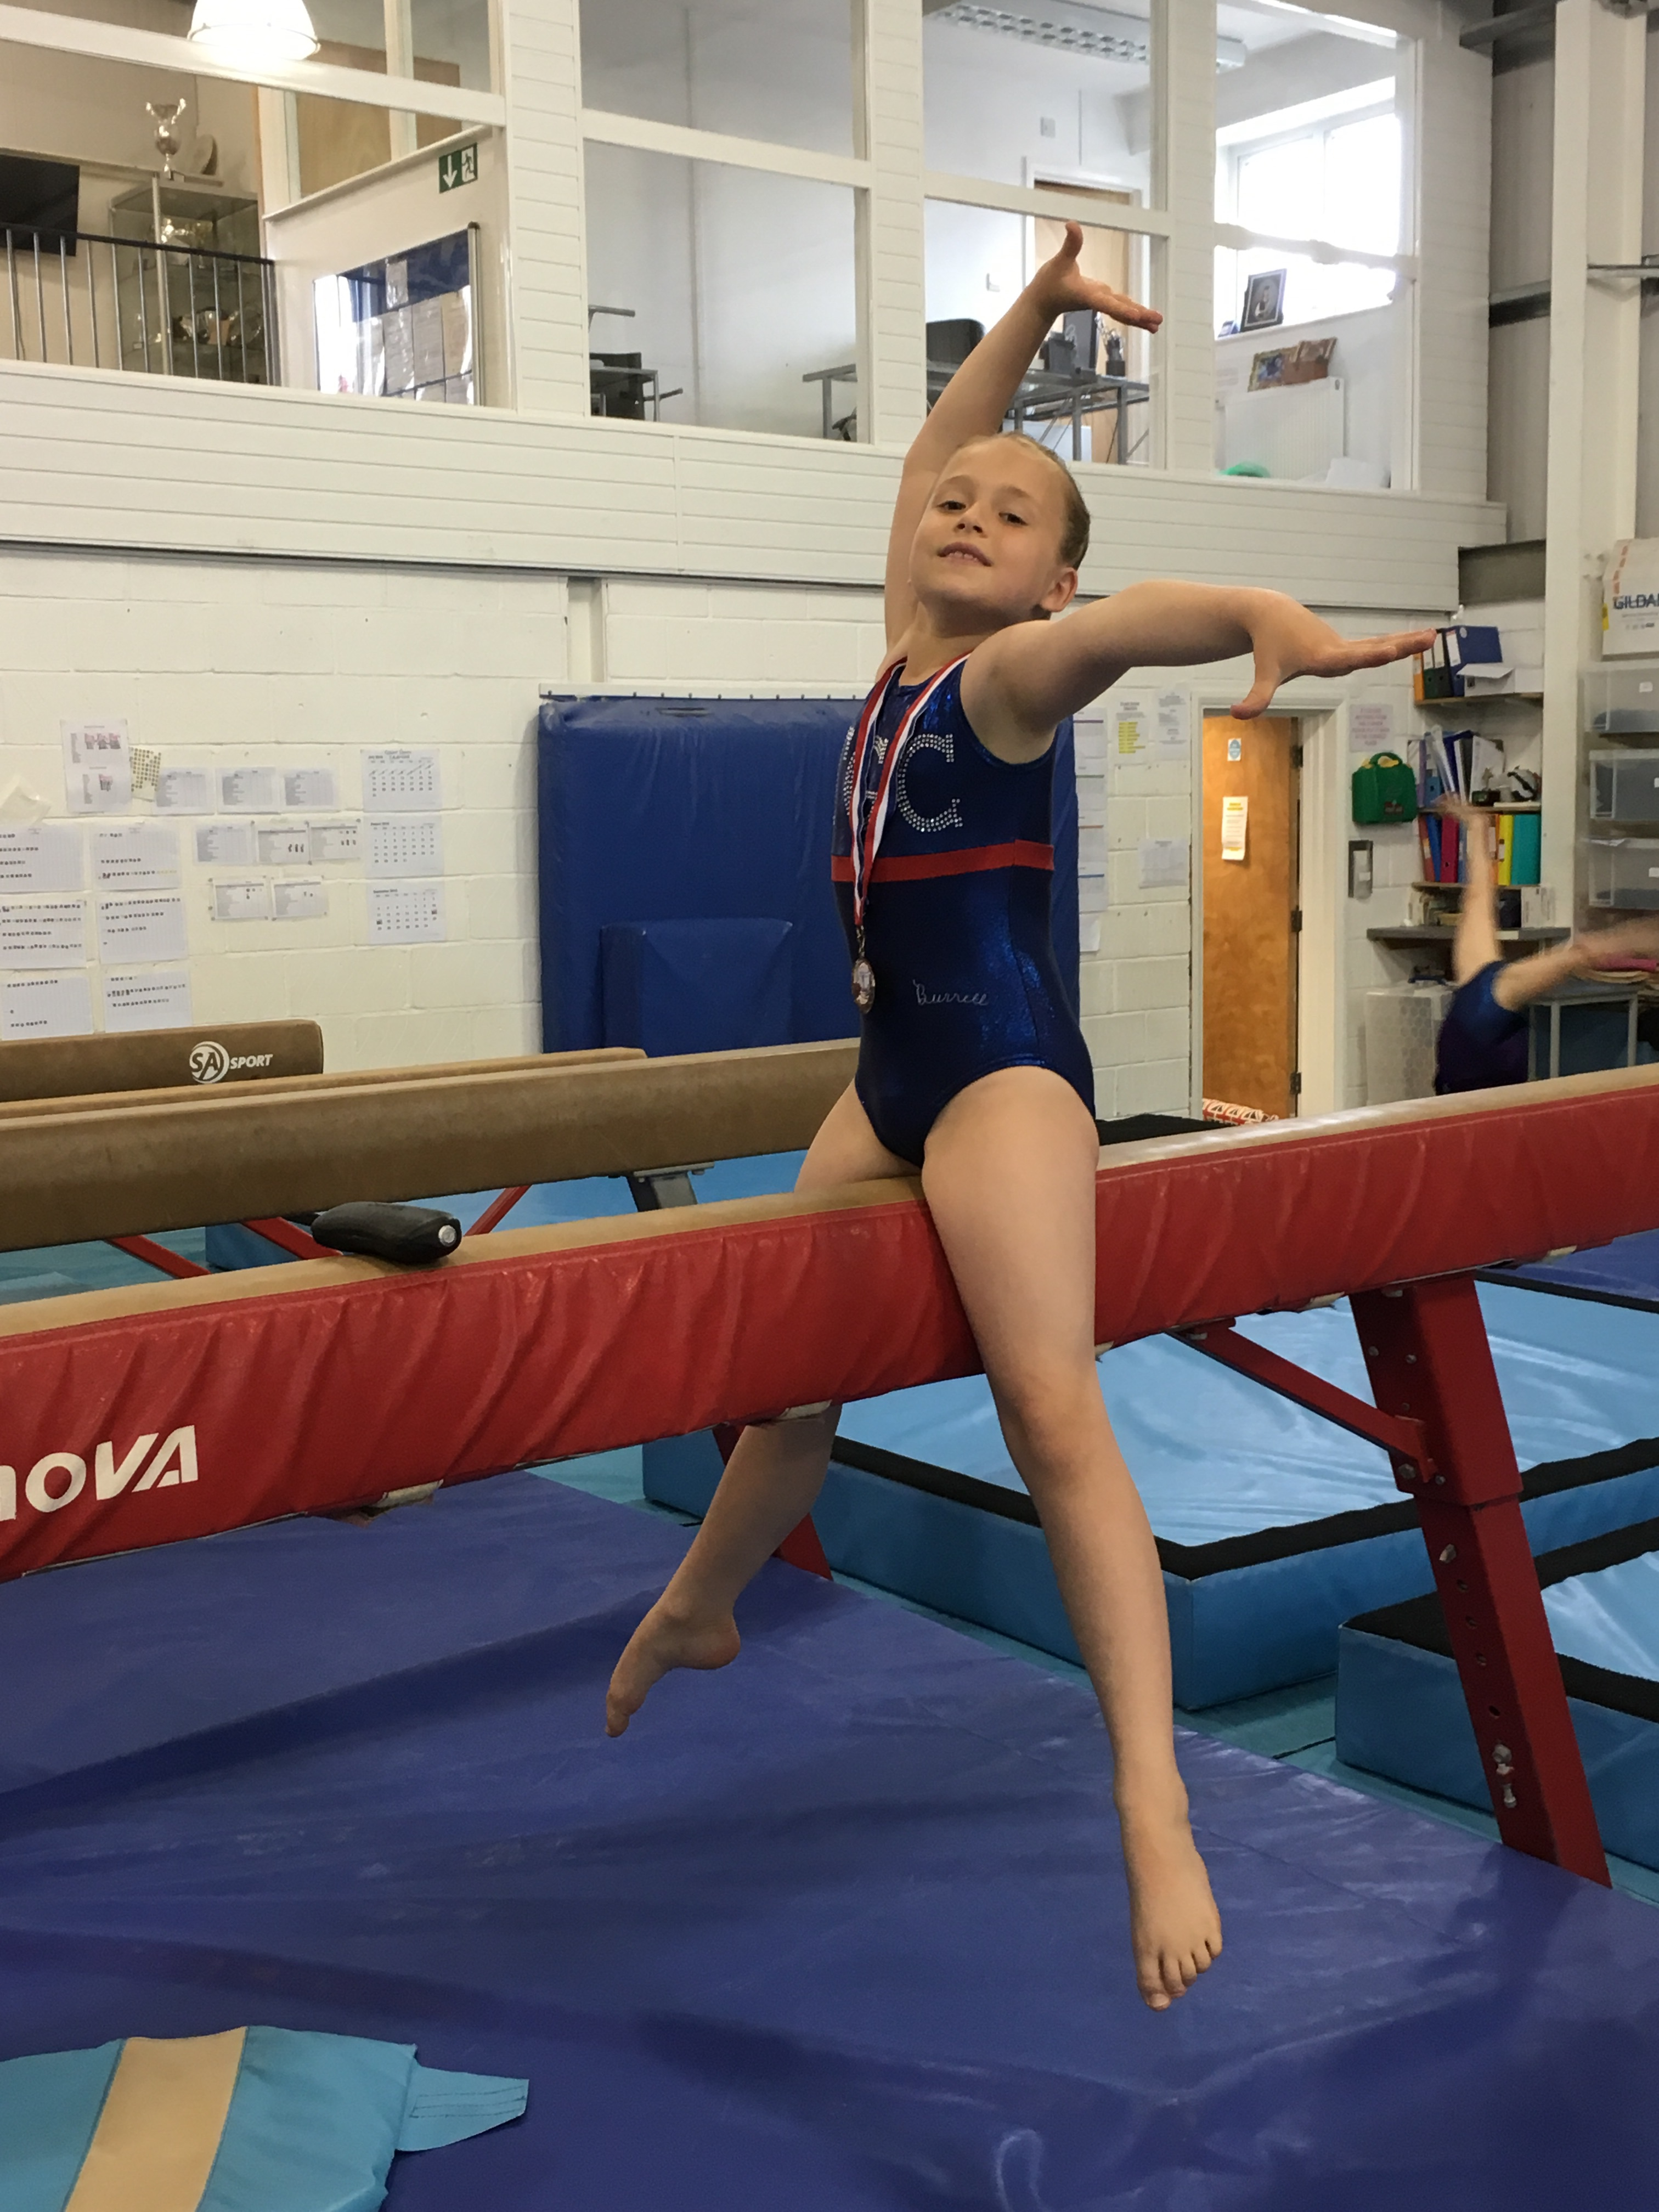 gymnast posing on beam with medal